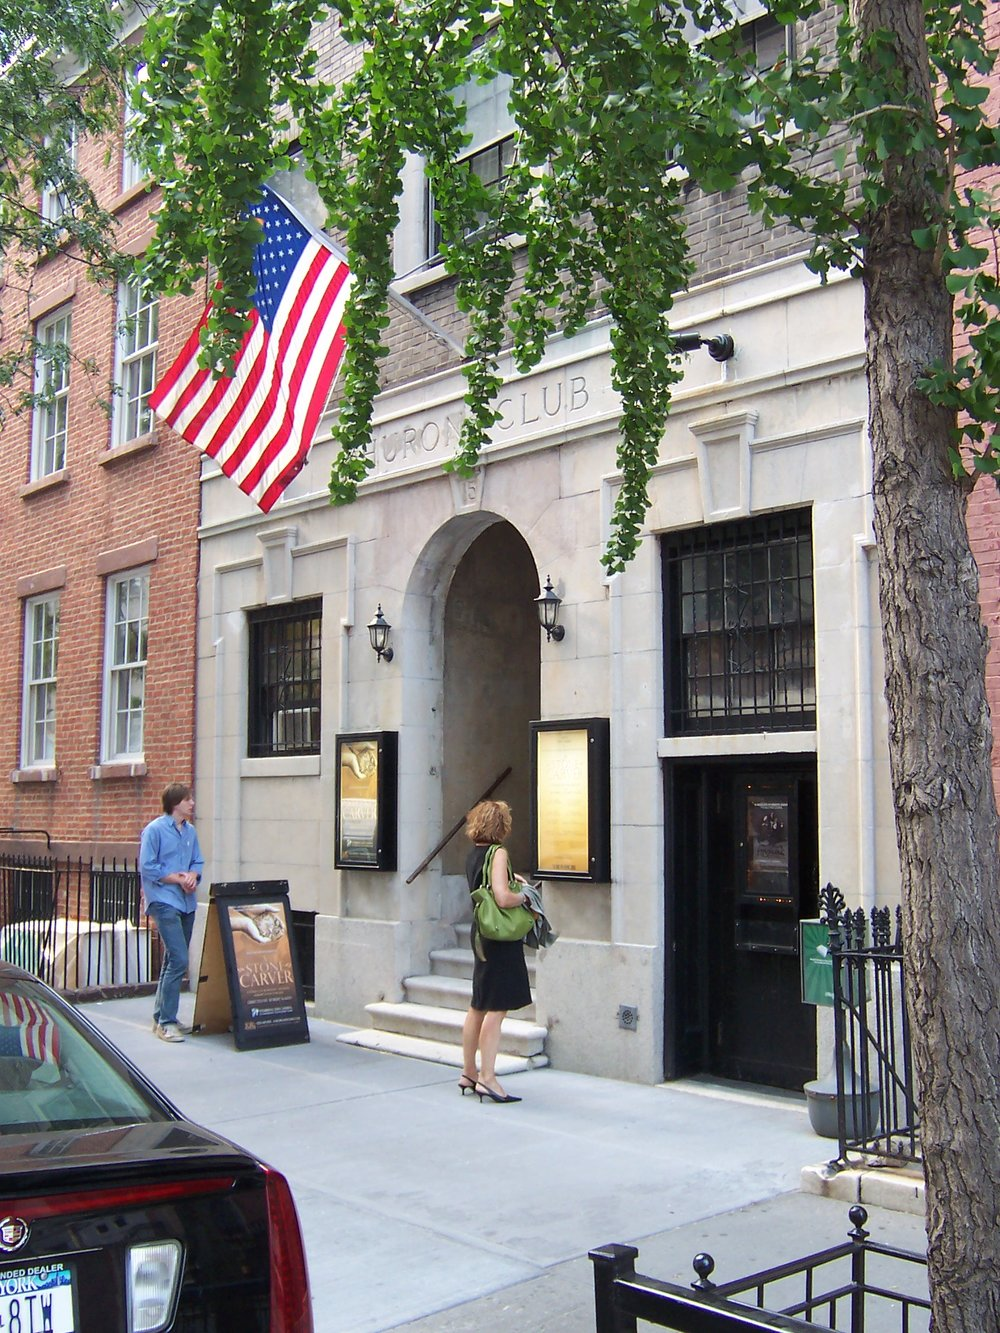 HISTORY - The SoHo Playhouse stands on land that was once Richmond Hill, a colonial mansion that served as headquarters for General George Washington and later home to Aaron Burr. Purchased from Burr in 1817, the land was then developed into federalist-style row houses by fur magnate John Jacob Astor.15 Van Dam Street, was designated at the Huron Club, a popular meeting house and night club for the Democratic Party. The turn of the century brought the Tammany Hall machine to the Huron Club. Prominent regulars included